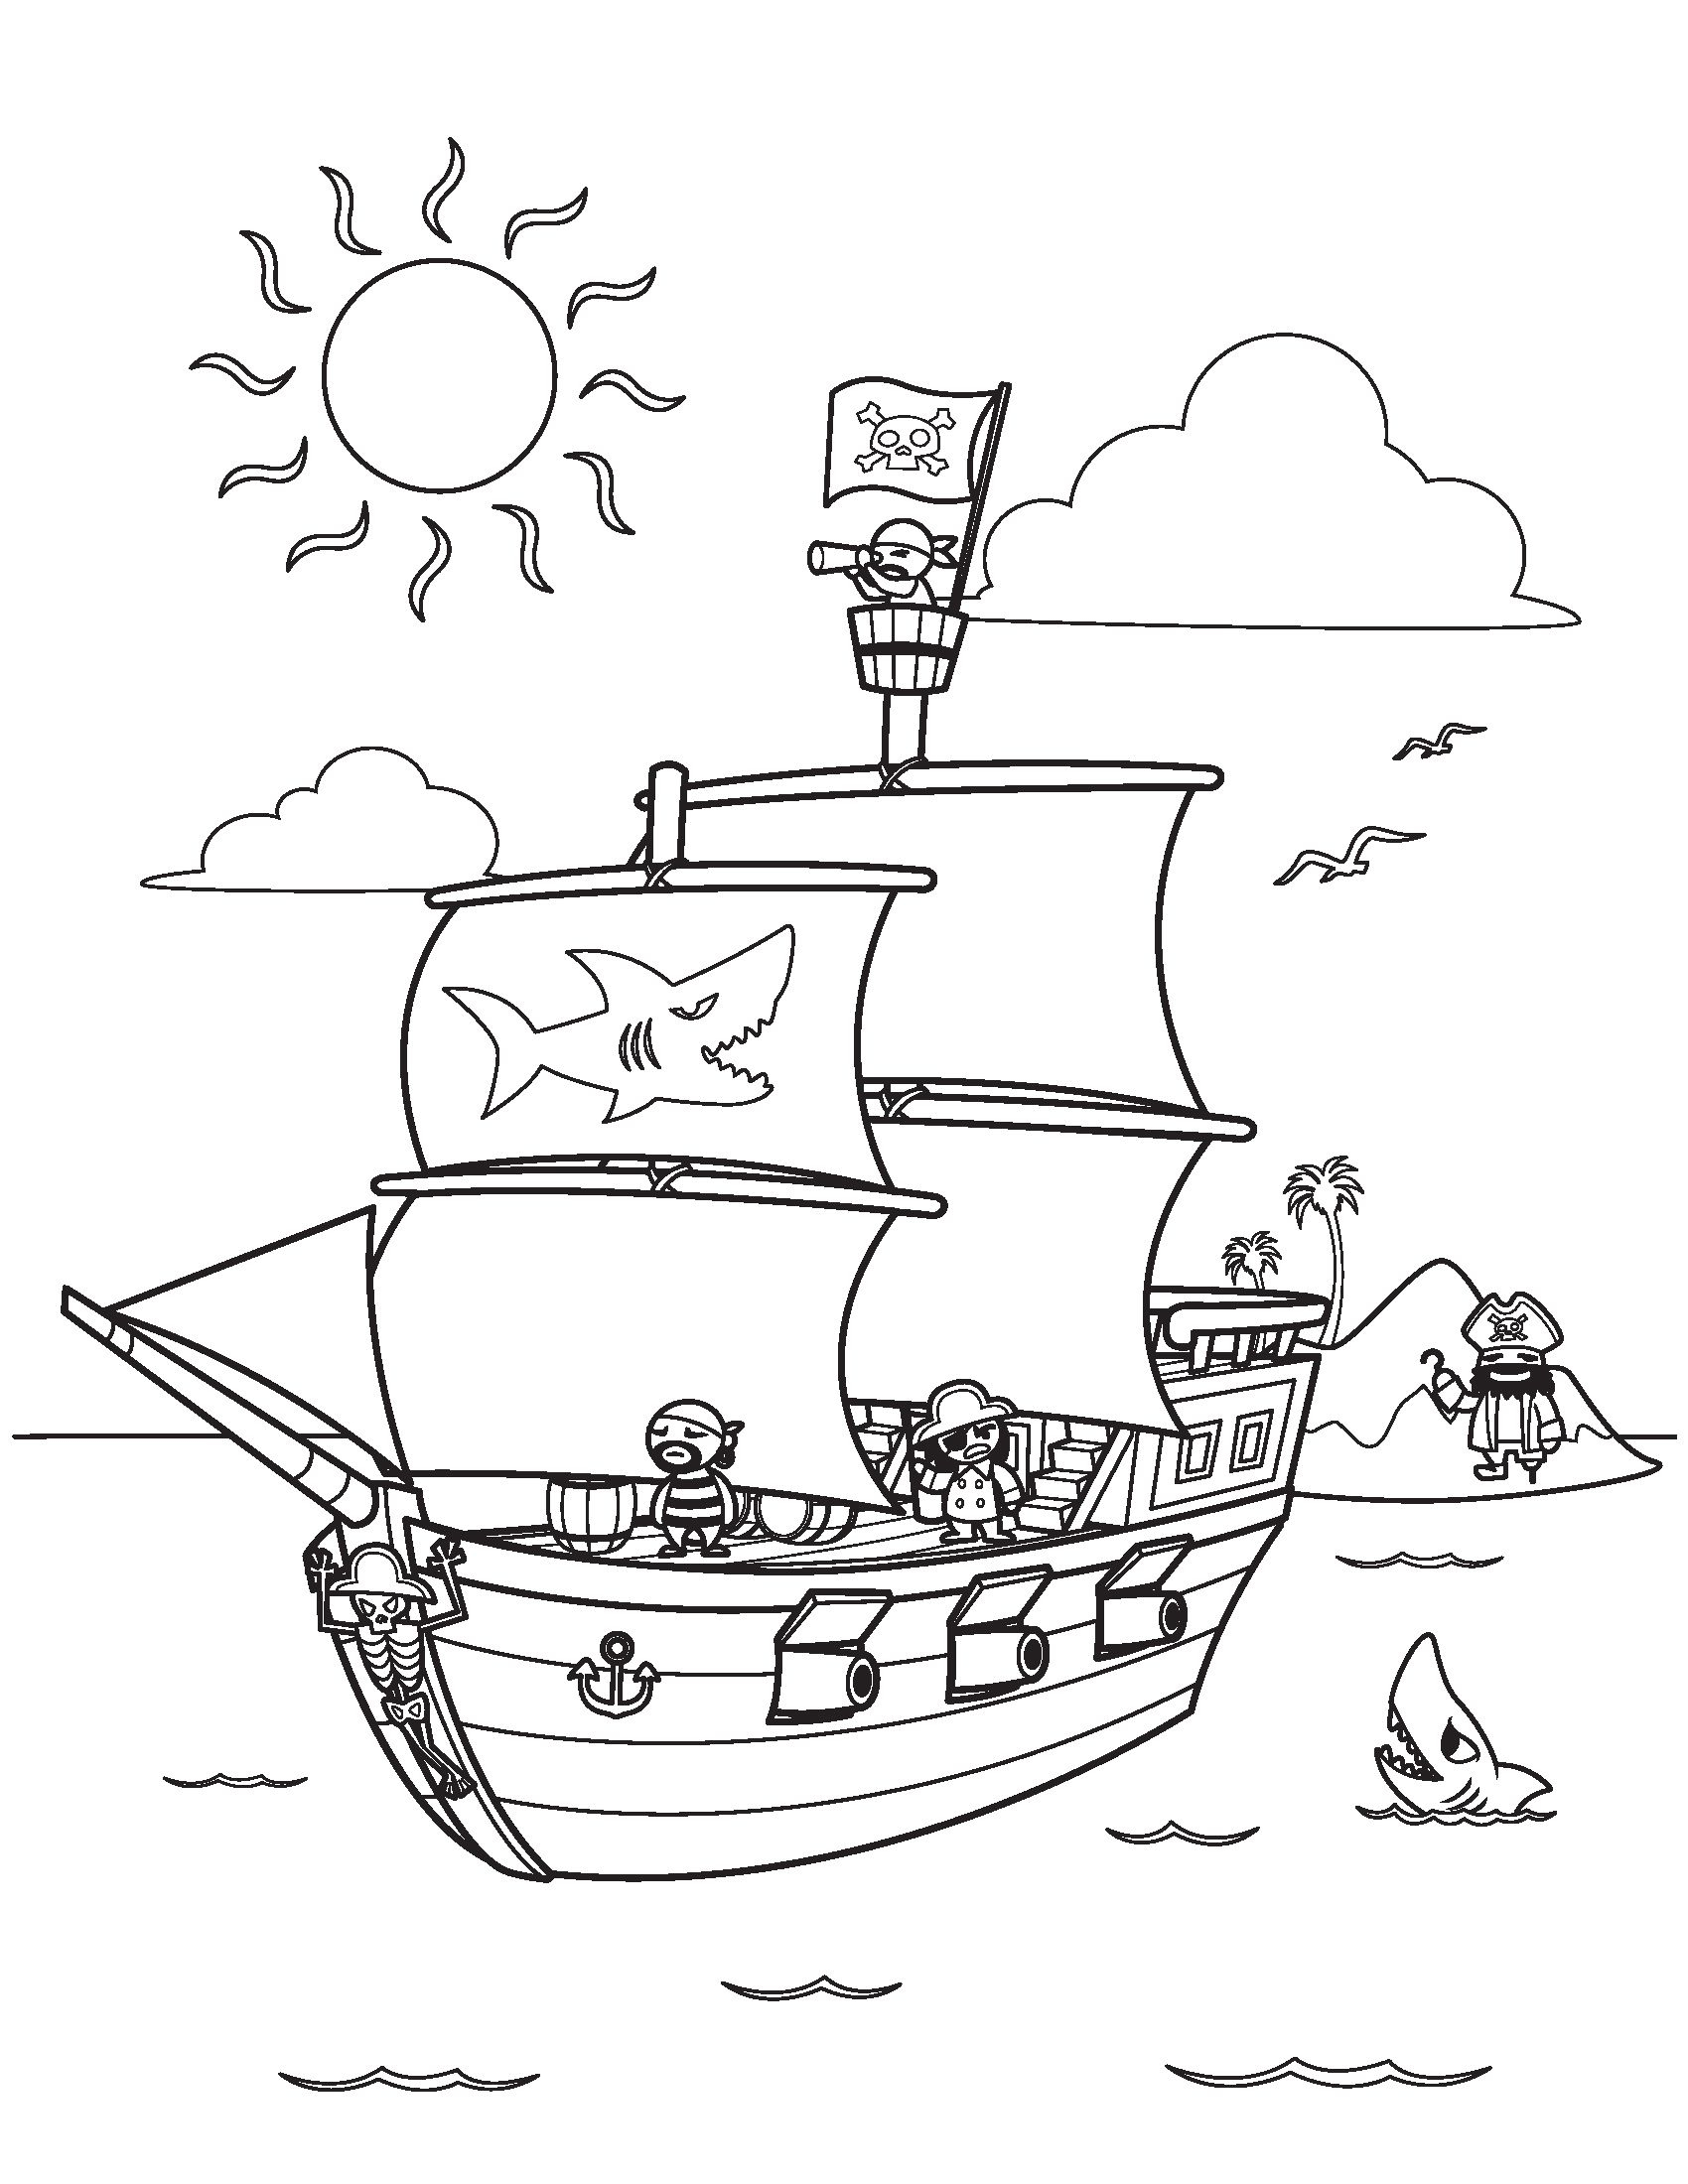 Pirate Ship Coloring Pages Kidsfreecoloring   Free Download Kids - Free Printable Boat Pictures